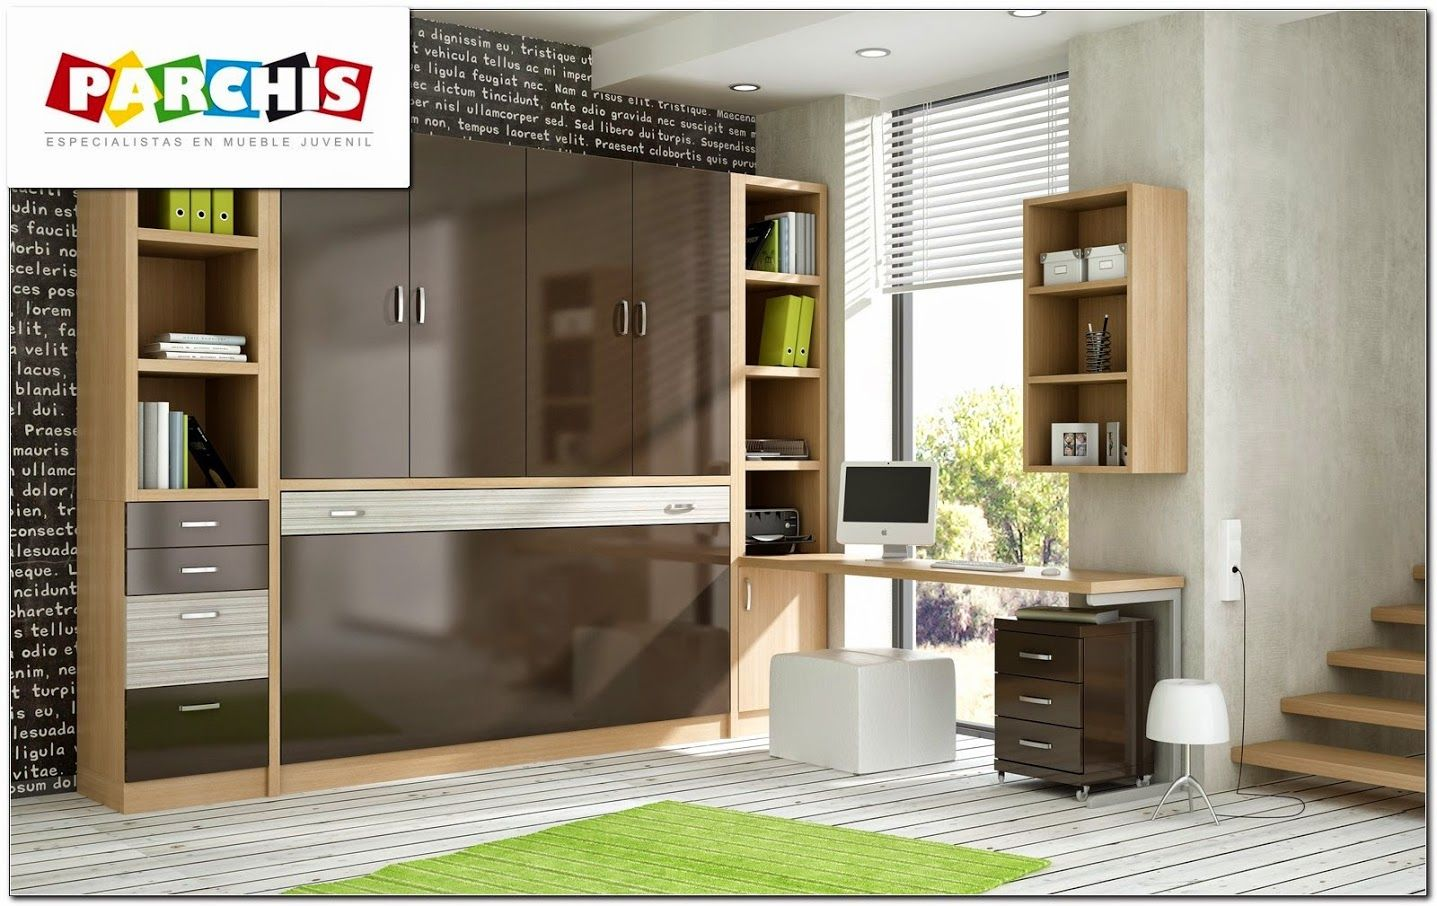 Muebles parchis madrid y torrijos camas abatibles for Muebles parchis